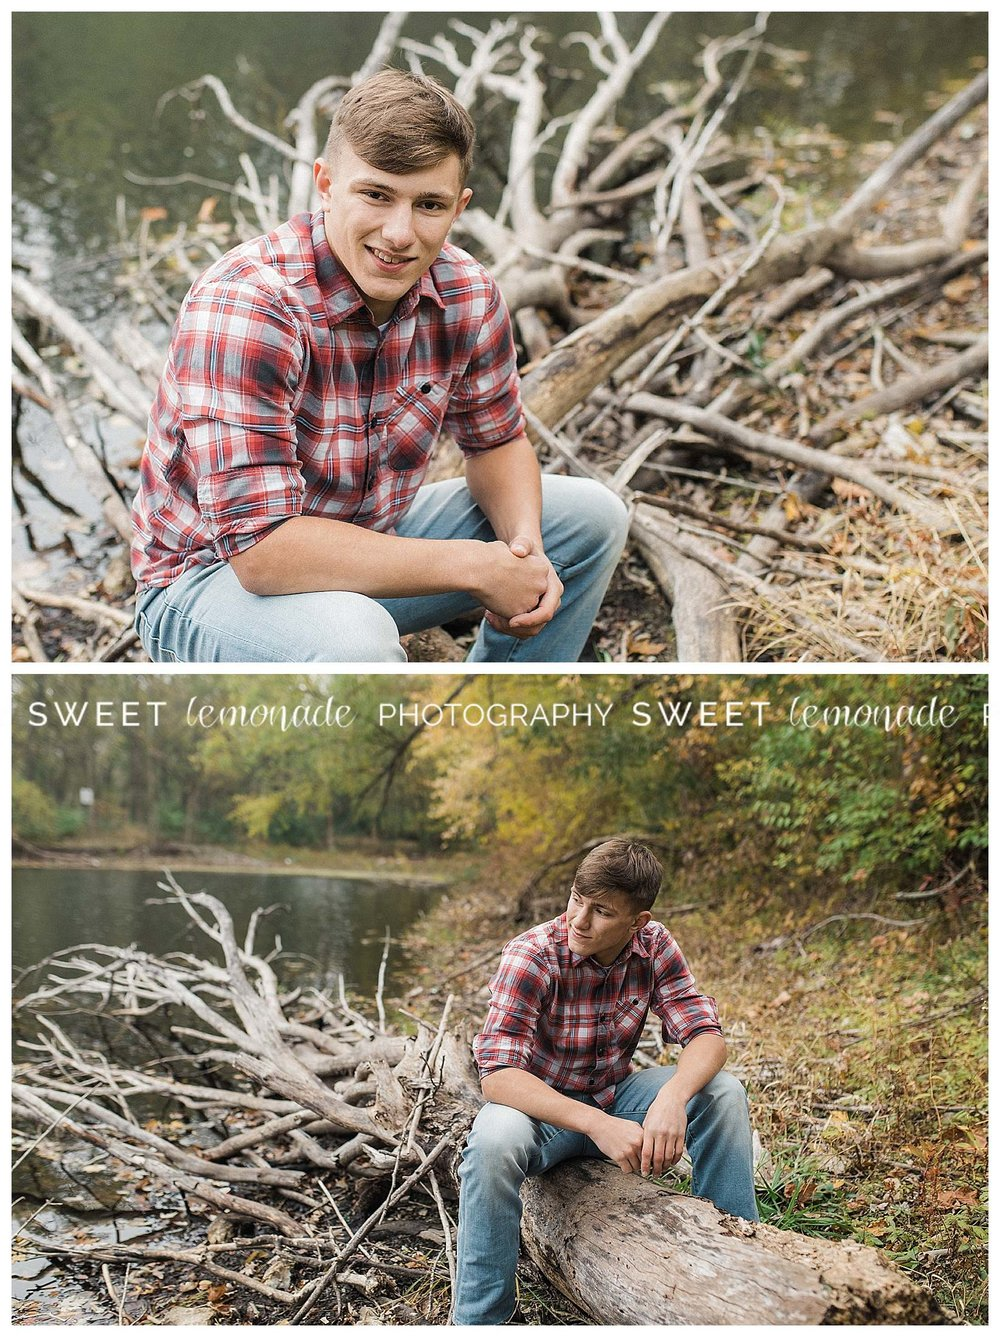 champaign-mahomet-illinois-senior-photographer-sweet-lemonade-photography_1797.jpg